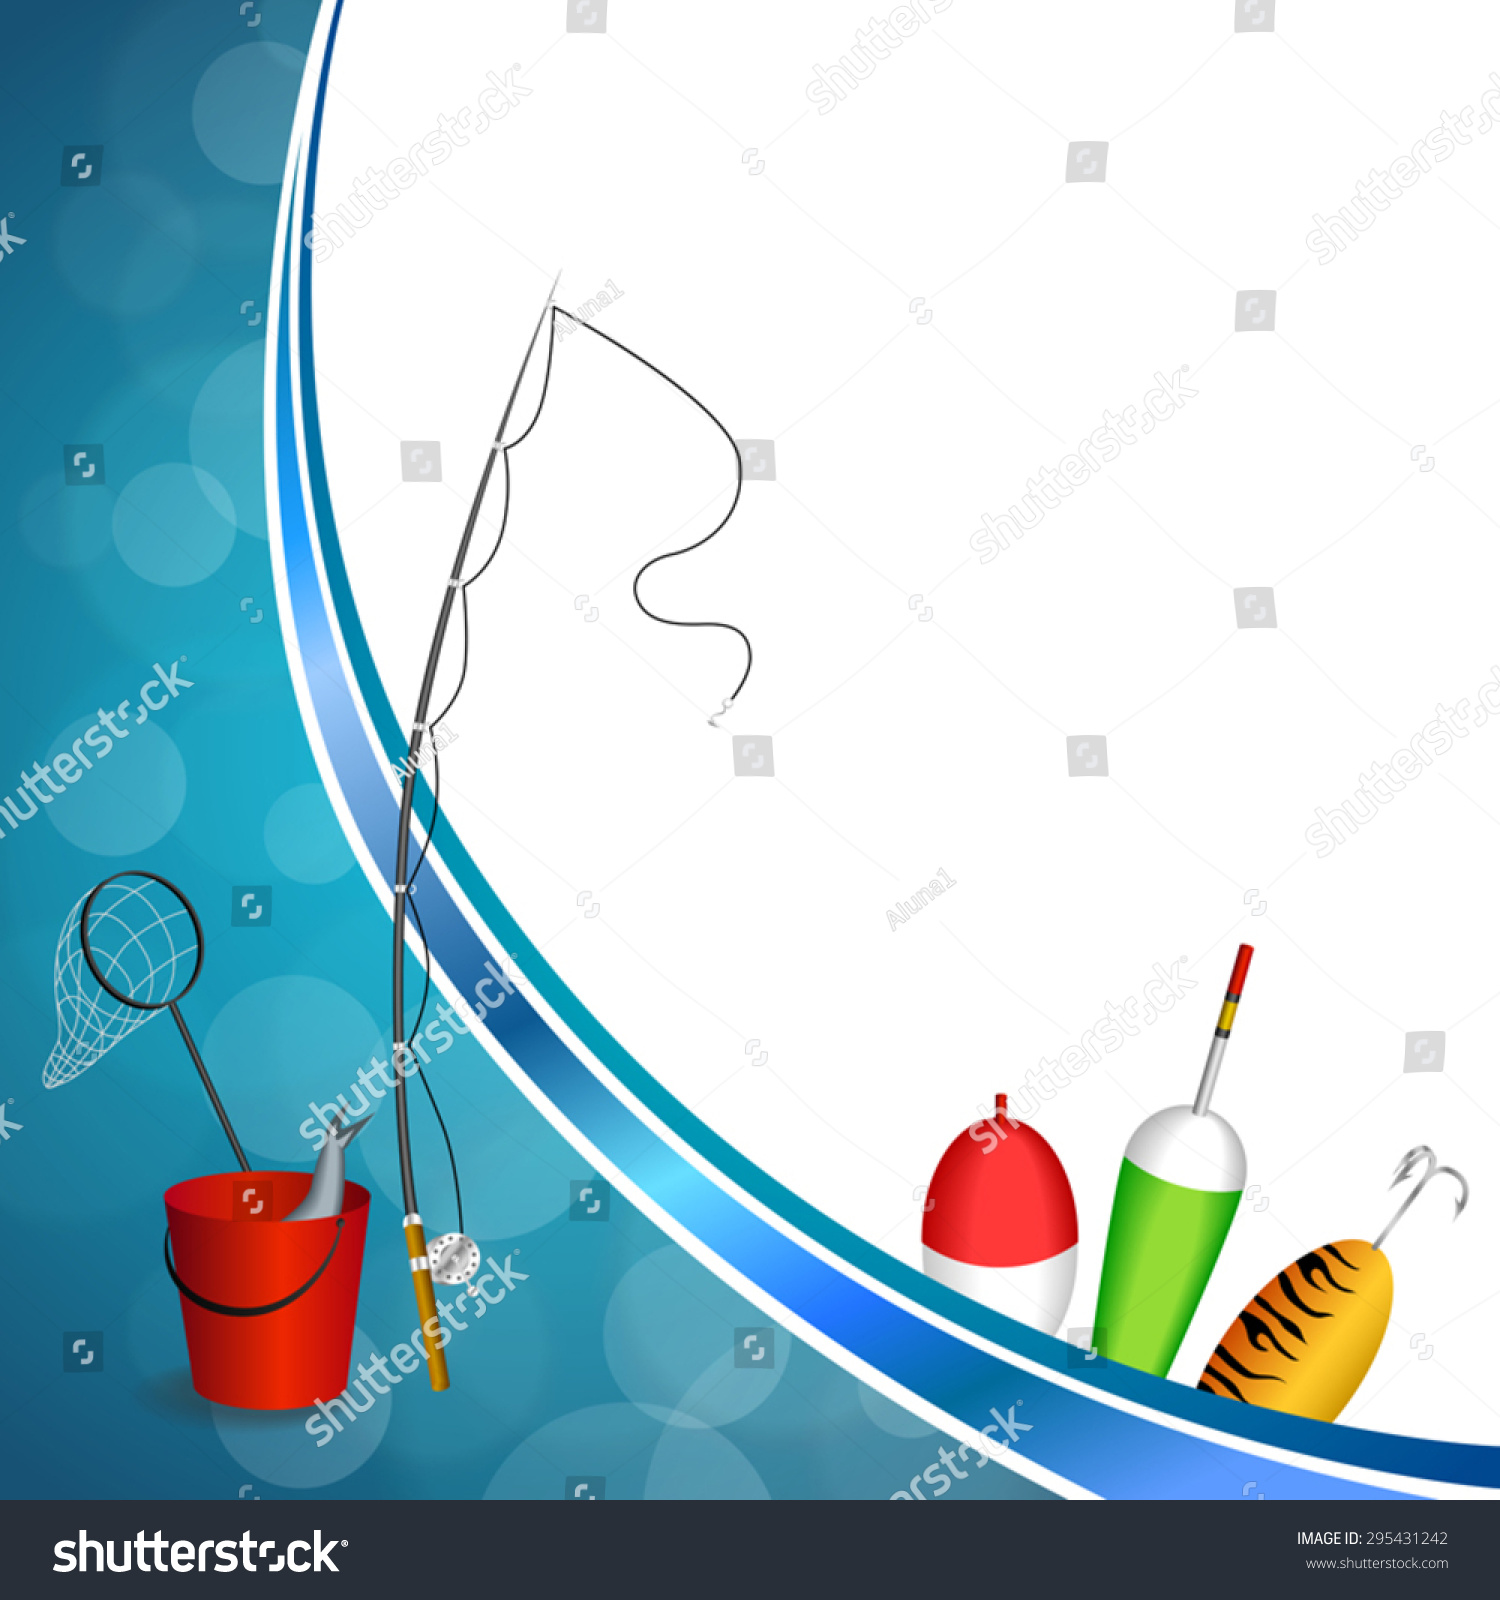 Background Abstract Blue White Fishing Rod Stock Vector (Royalty ...